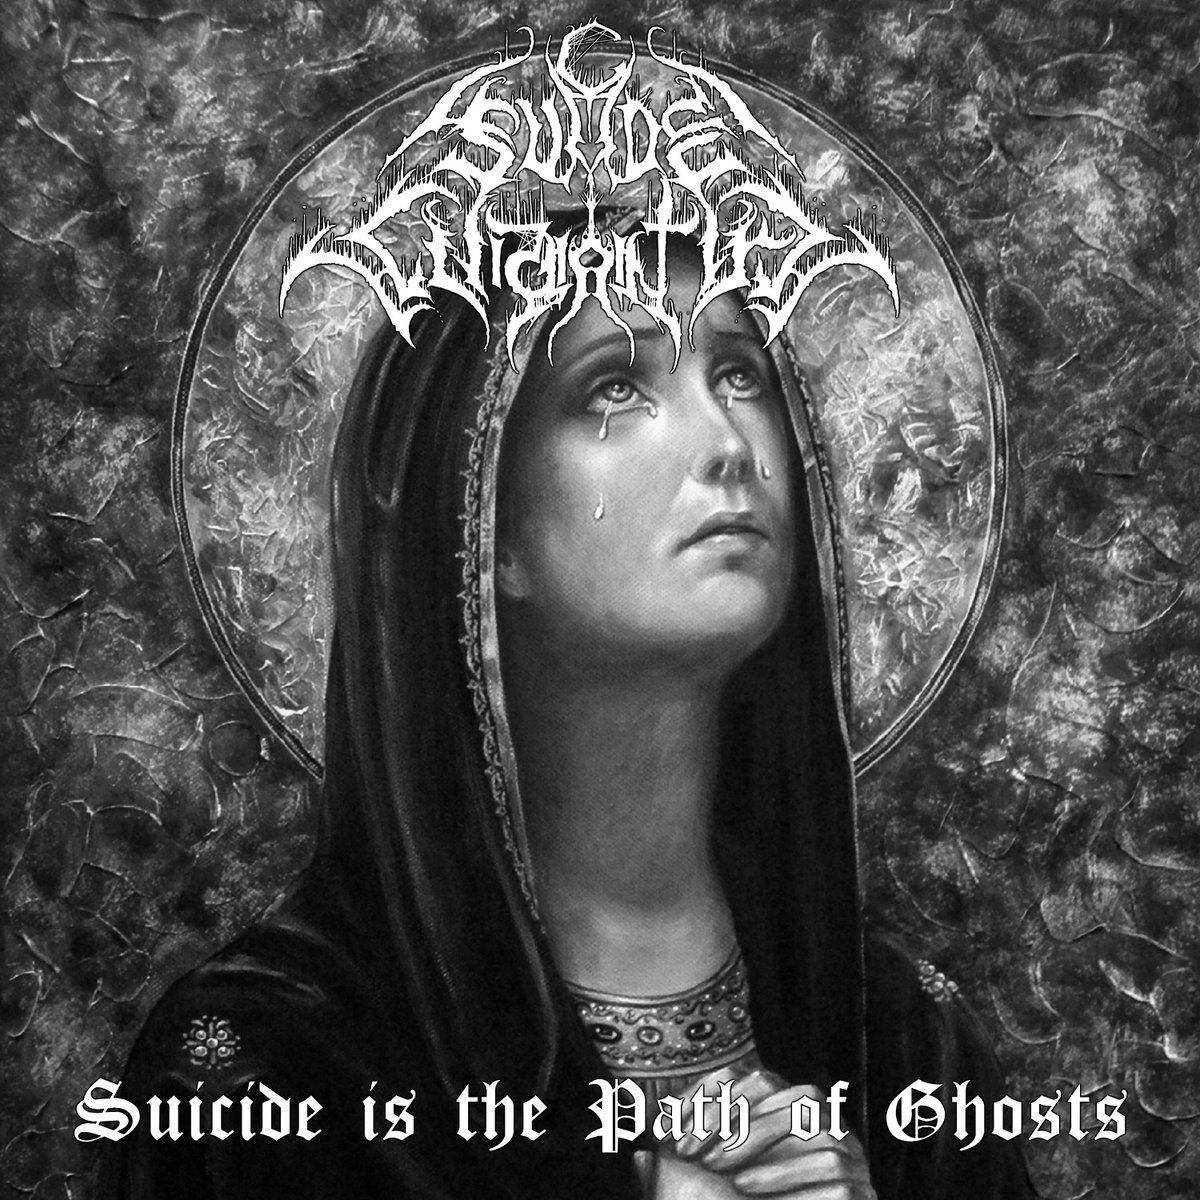 4. Suicide Wraith - Suicide Is The Path Of Ghosts